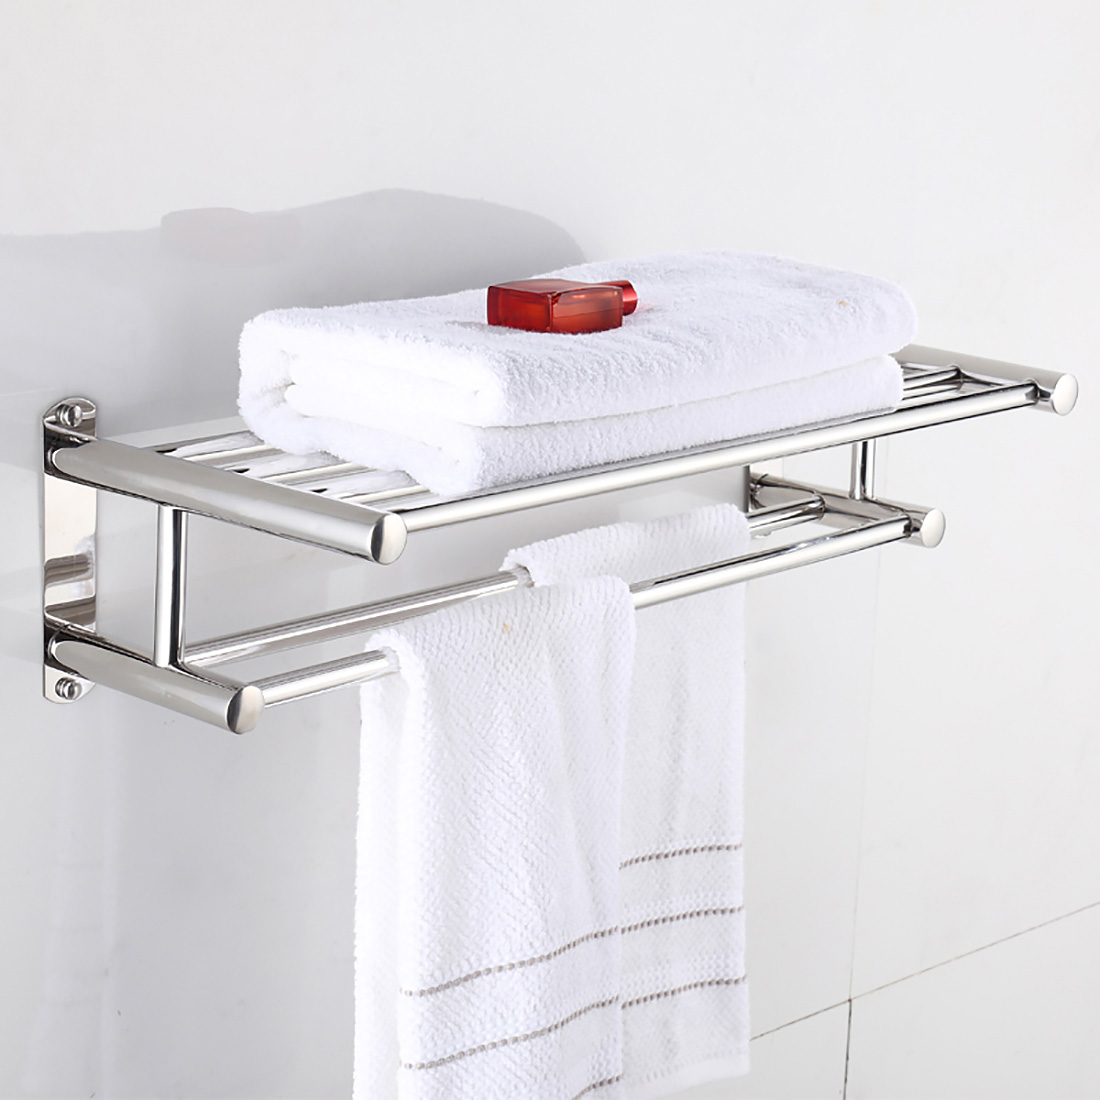 Stainless Steel Double Towel Rail Holder Wall Mounted Bathroom Bath Rack Shelf Ebay